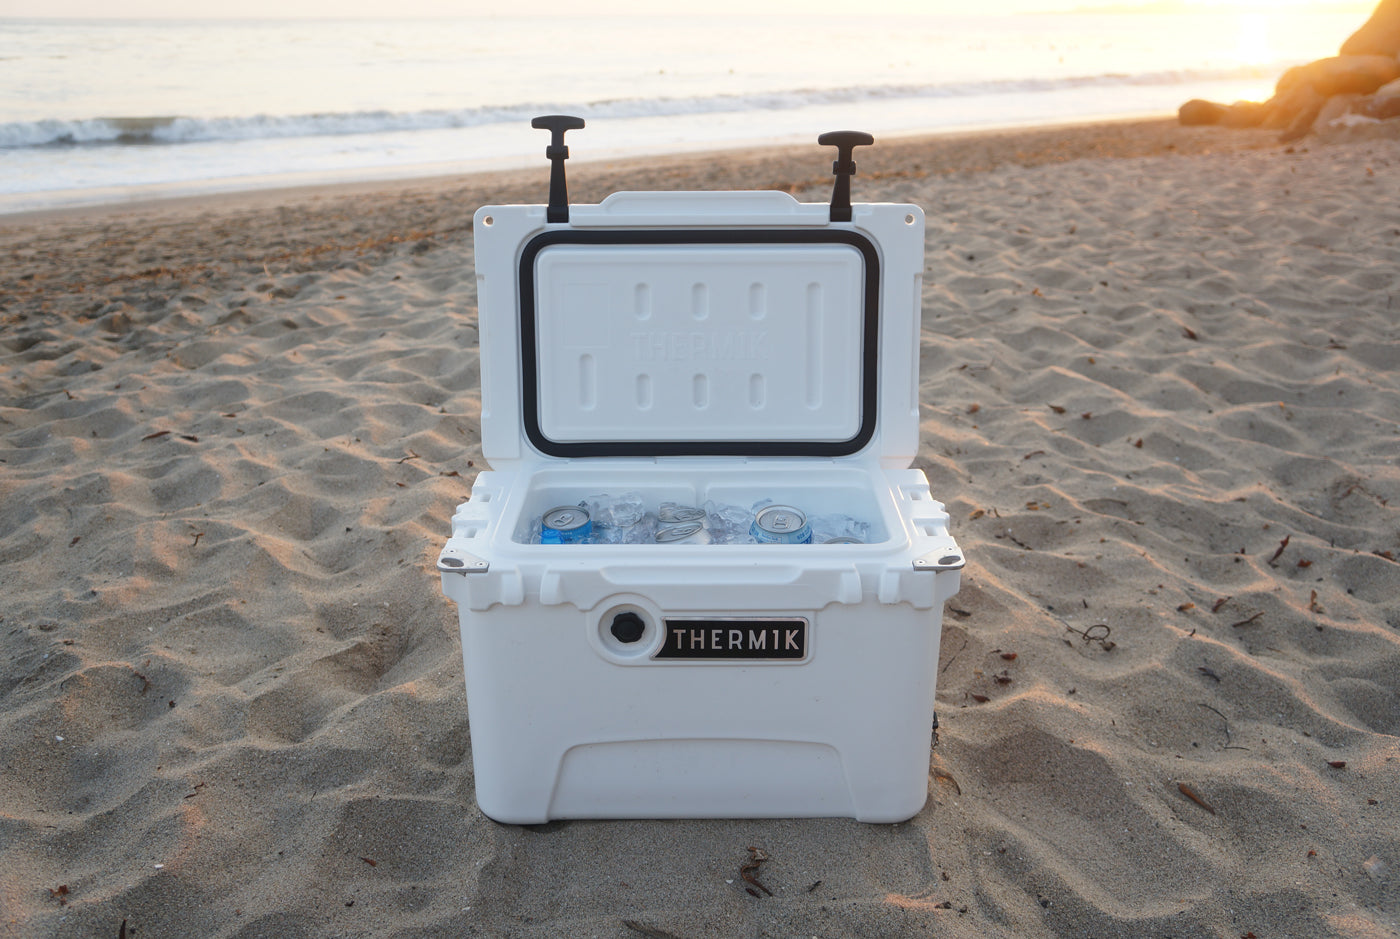 Thermik cooler at the beach